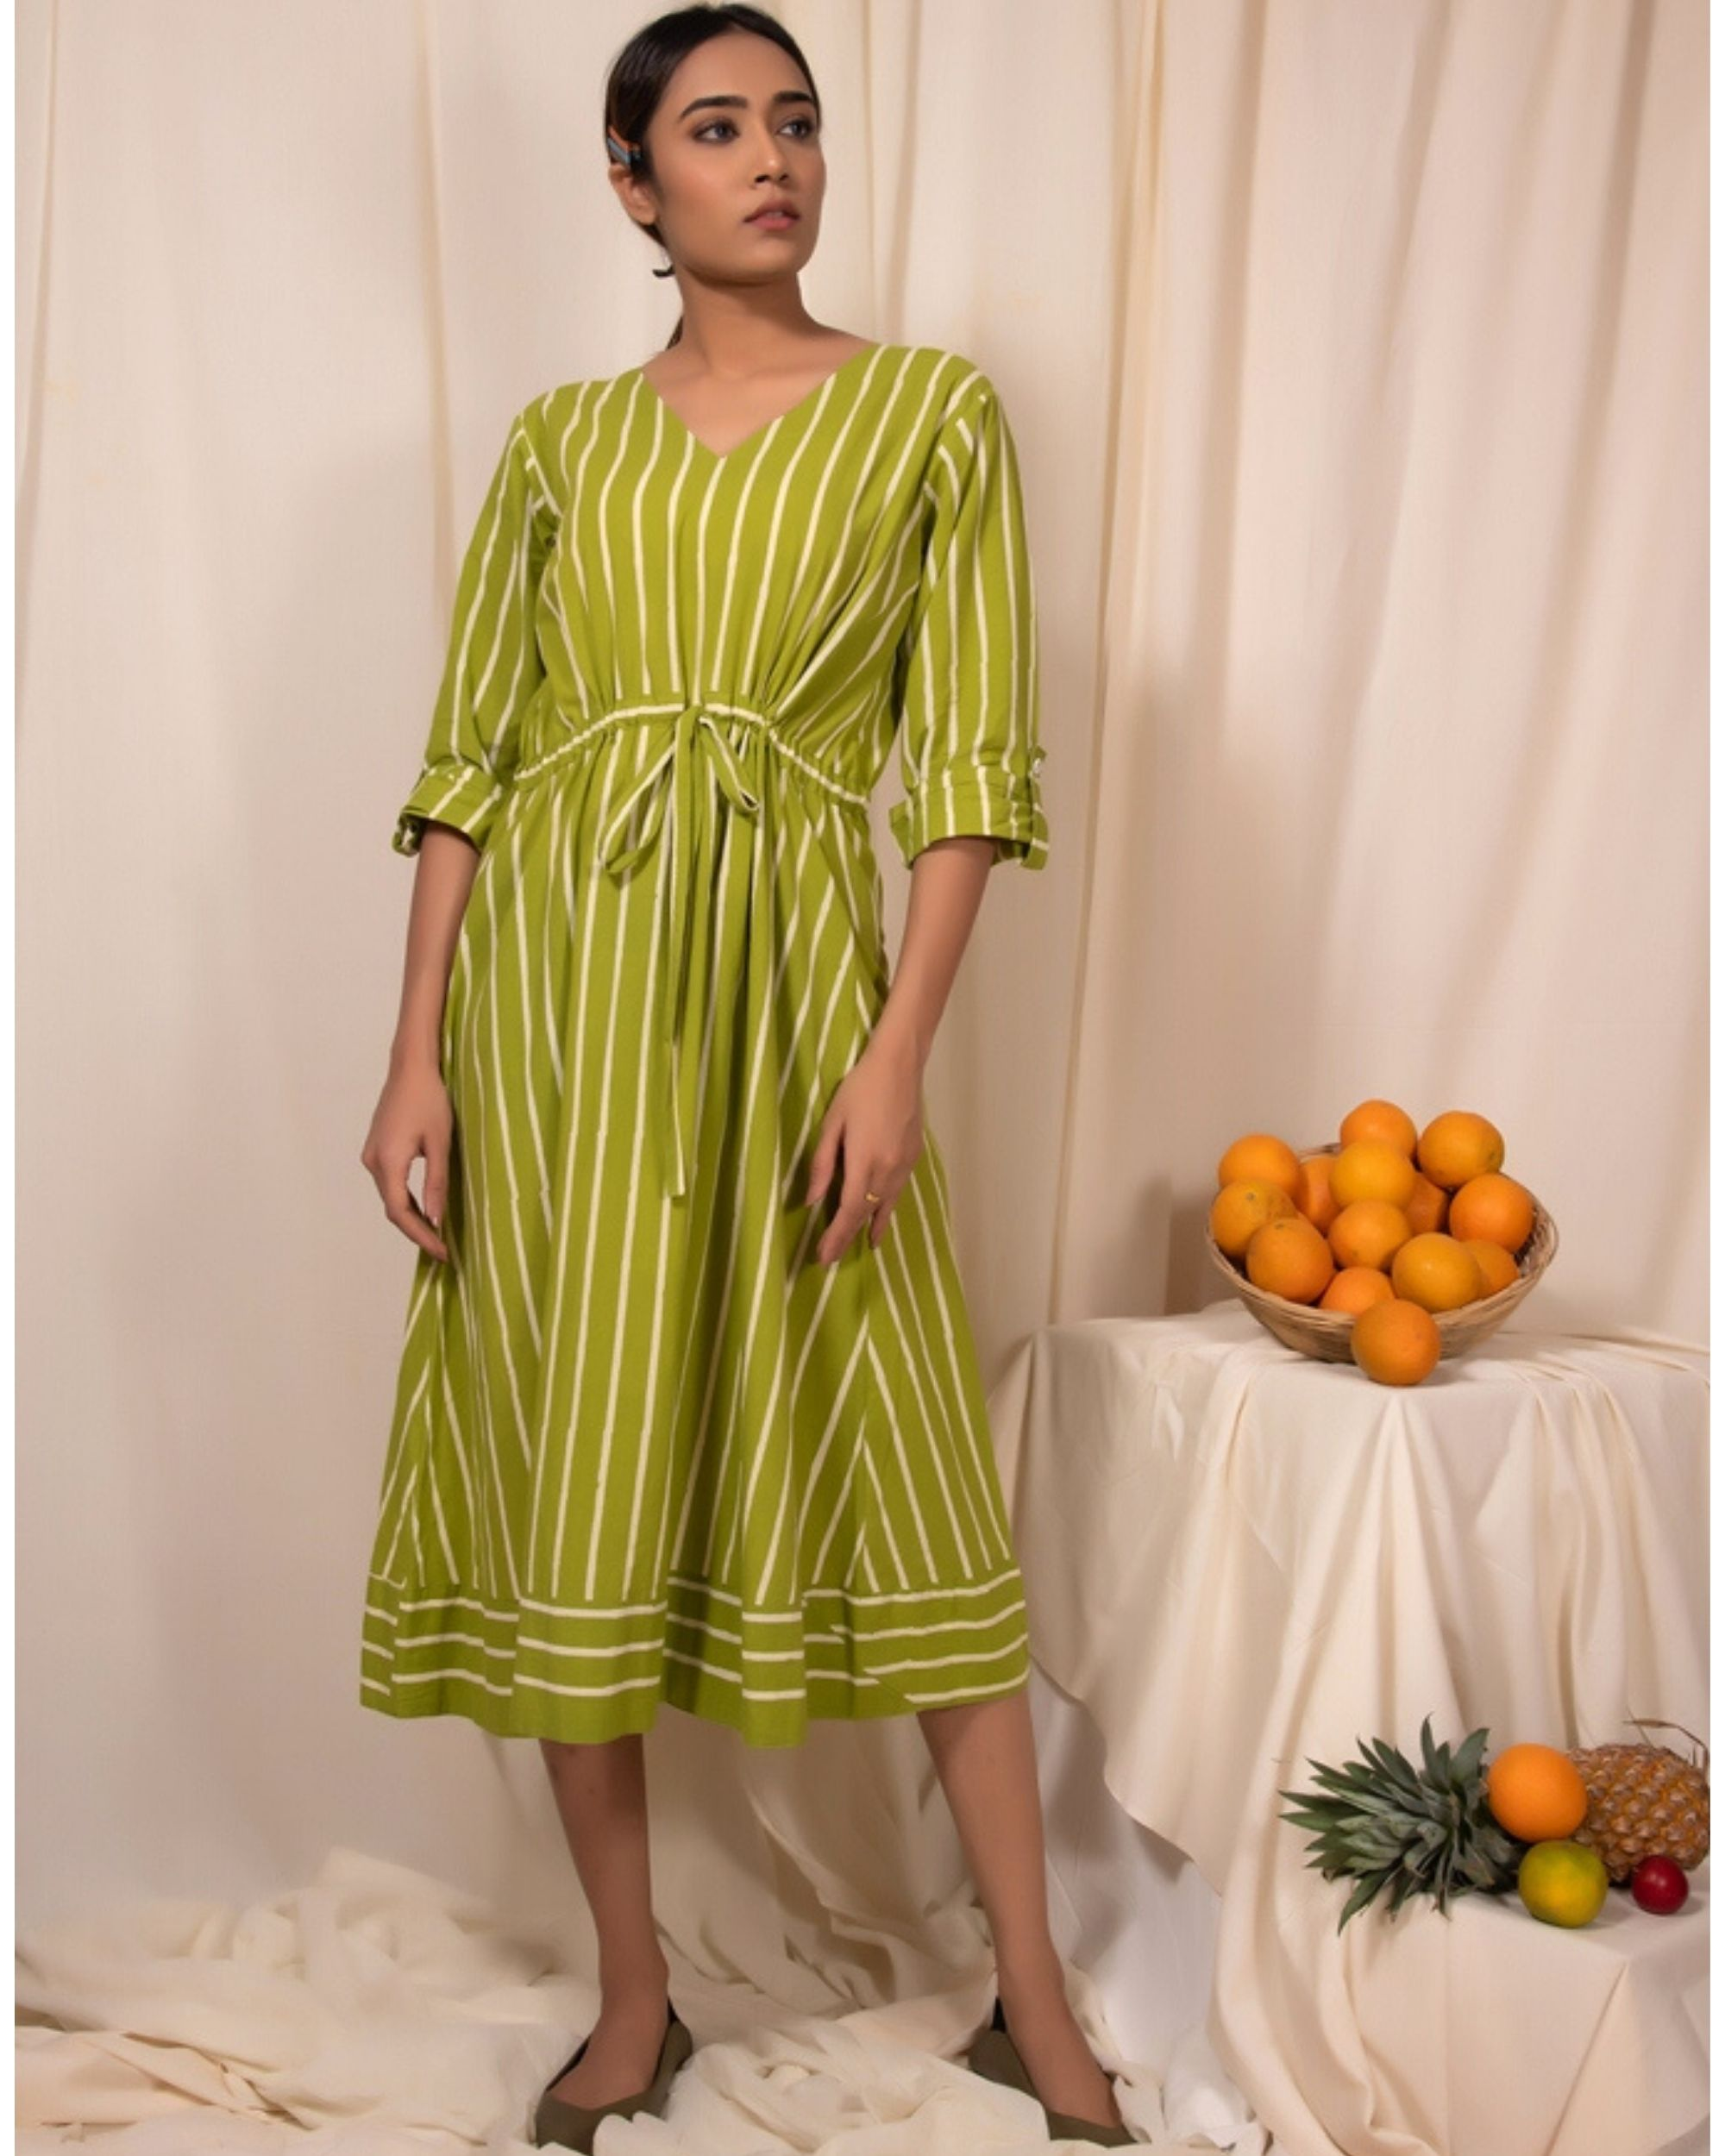 Lime green striped tie-up dress